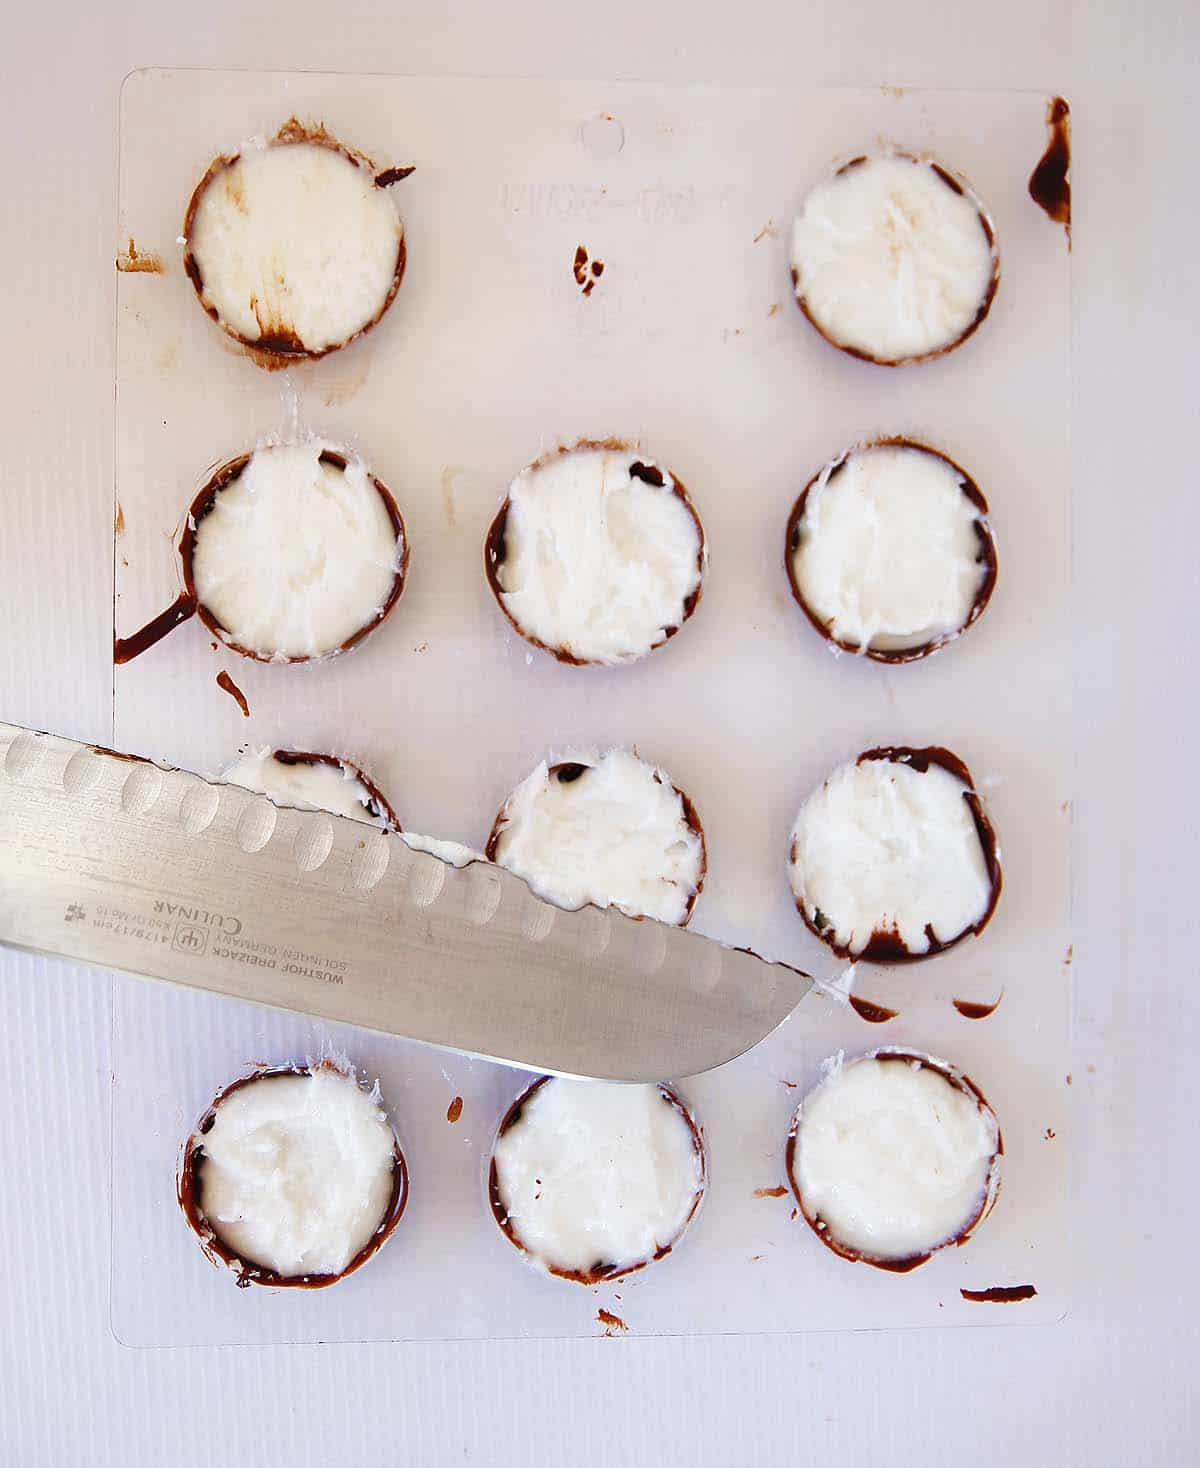 peppermint-patties-recipe-step-2a